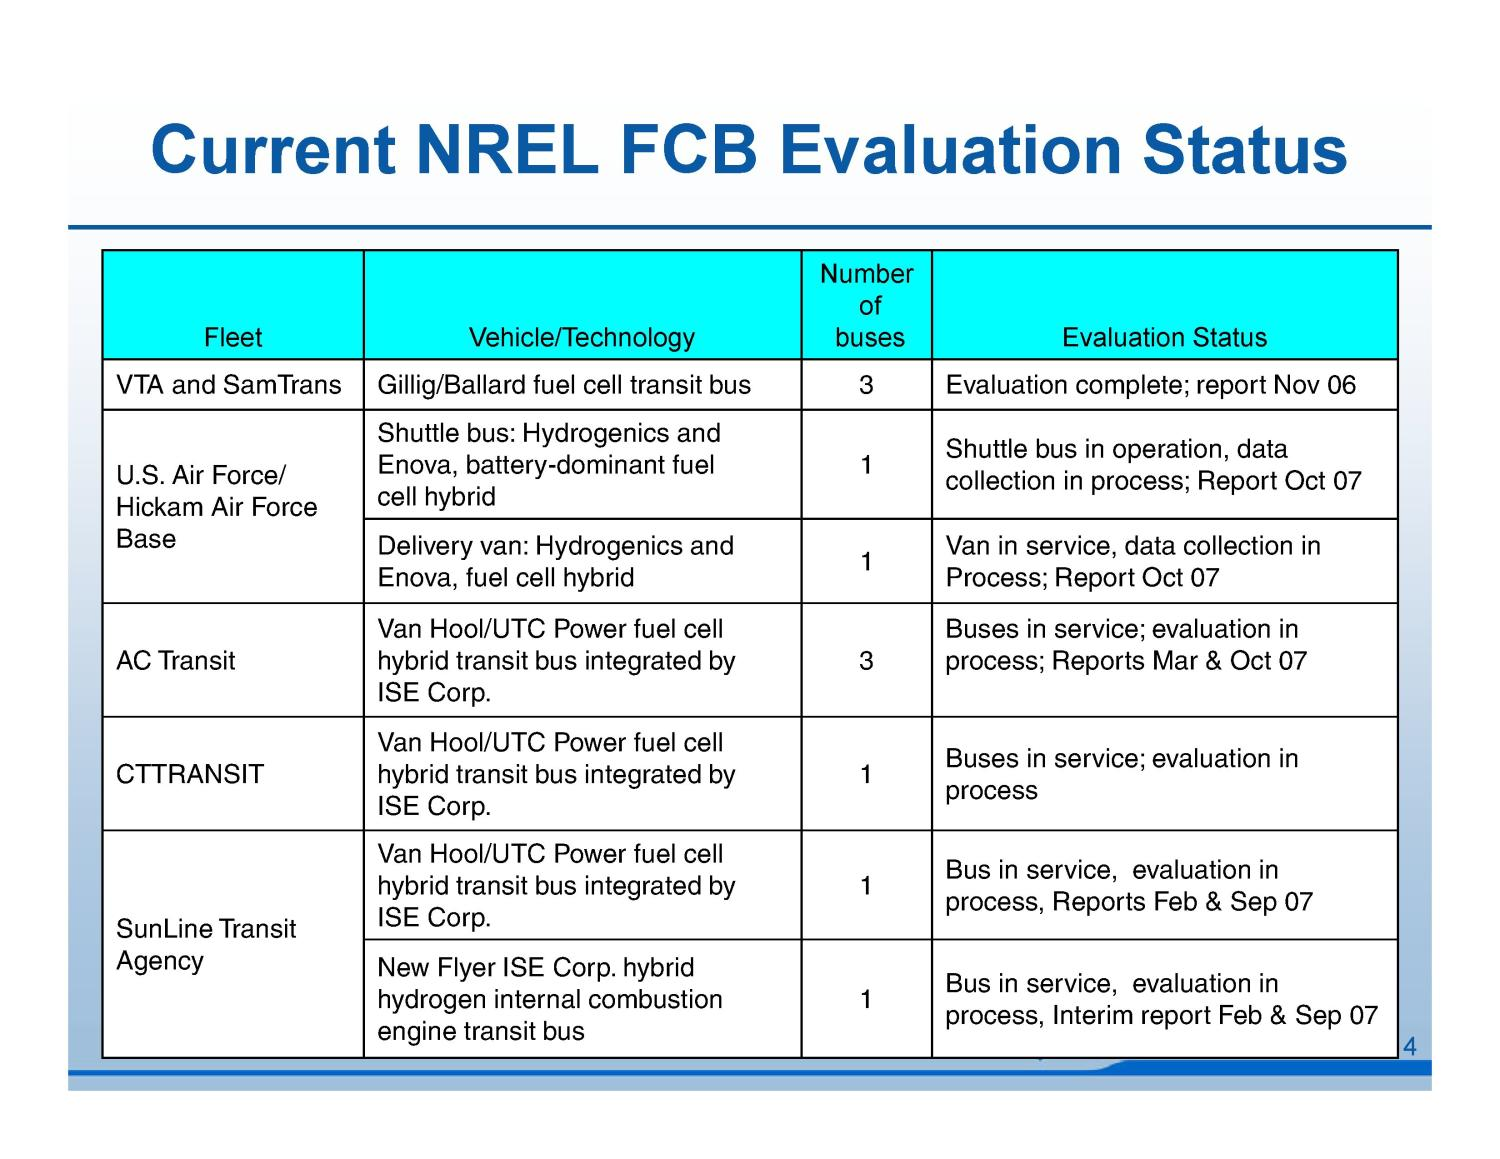 Fuel Cell Bus Evaluation Results                                                                                                      [Sequence #]: 4 of 25